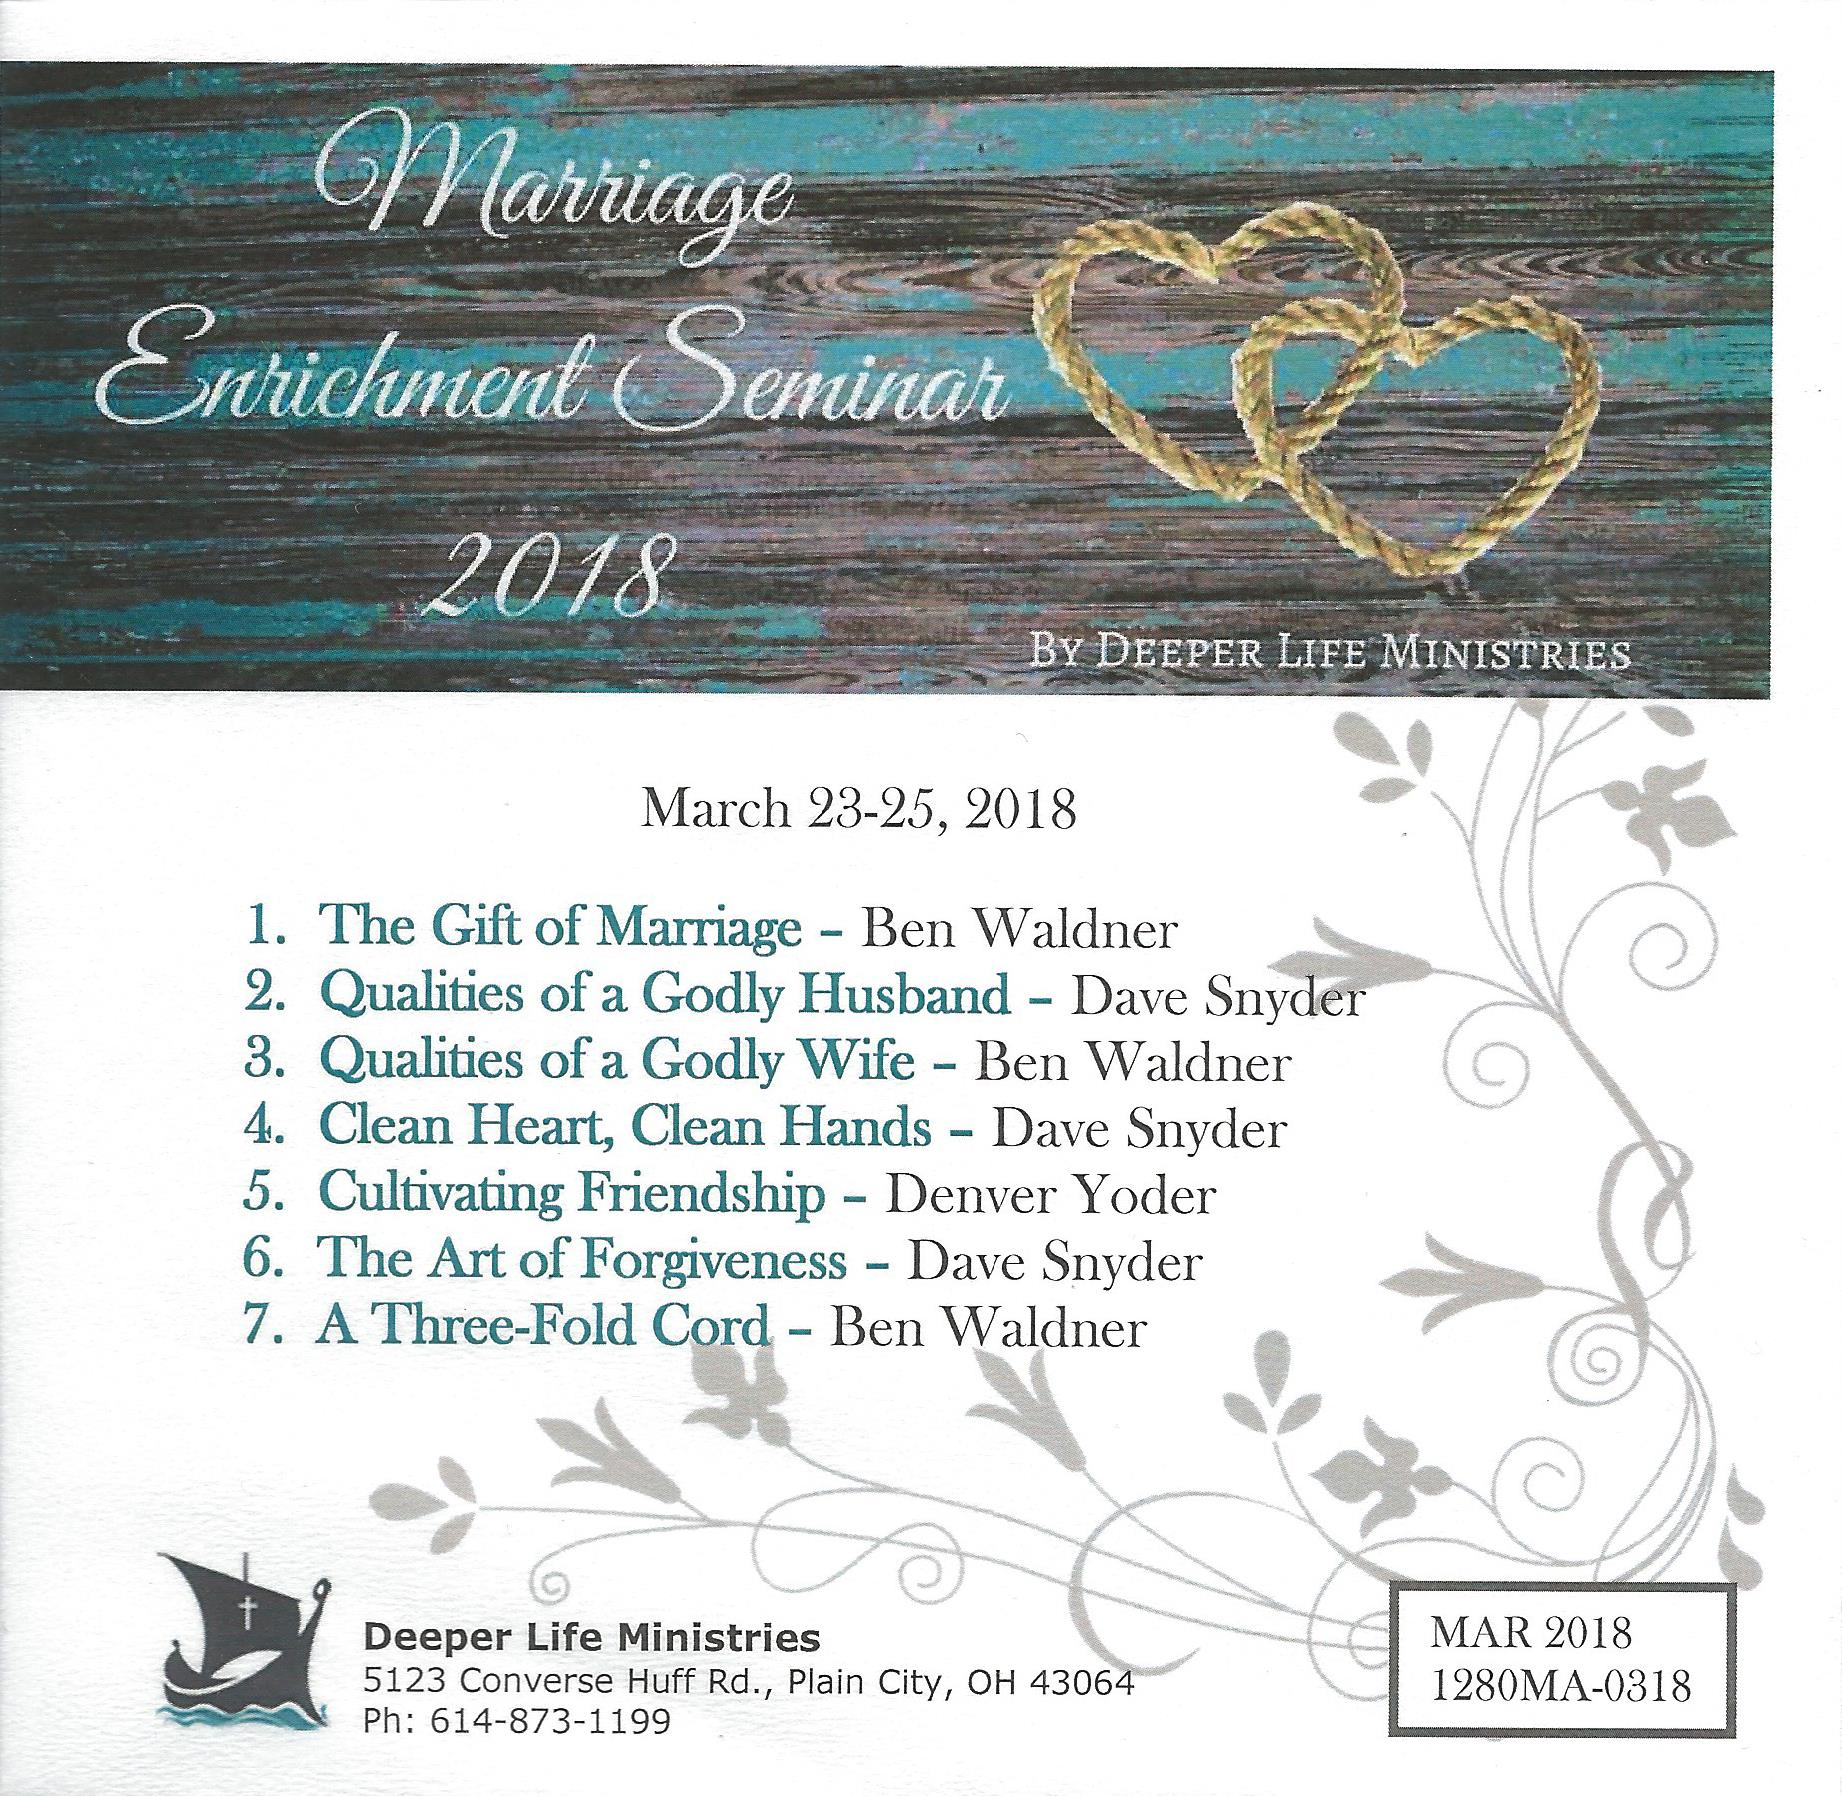 MARRIAGE ENRICHMENT SEMINAR | 2018 7 CD Album